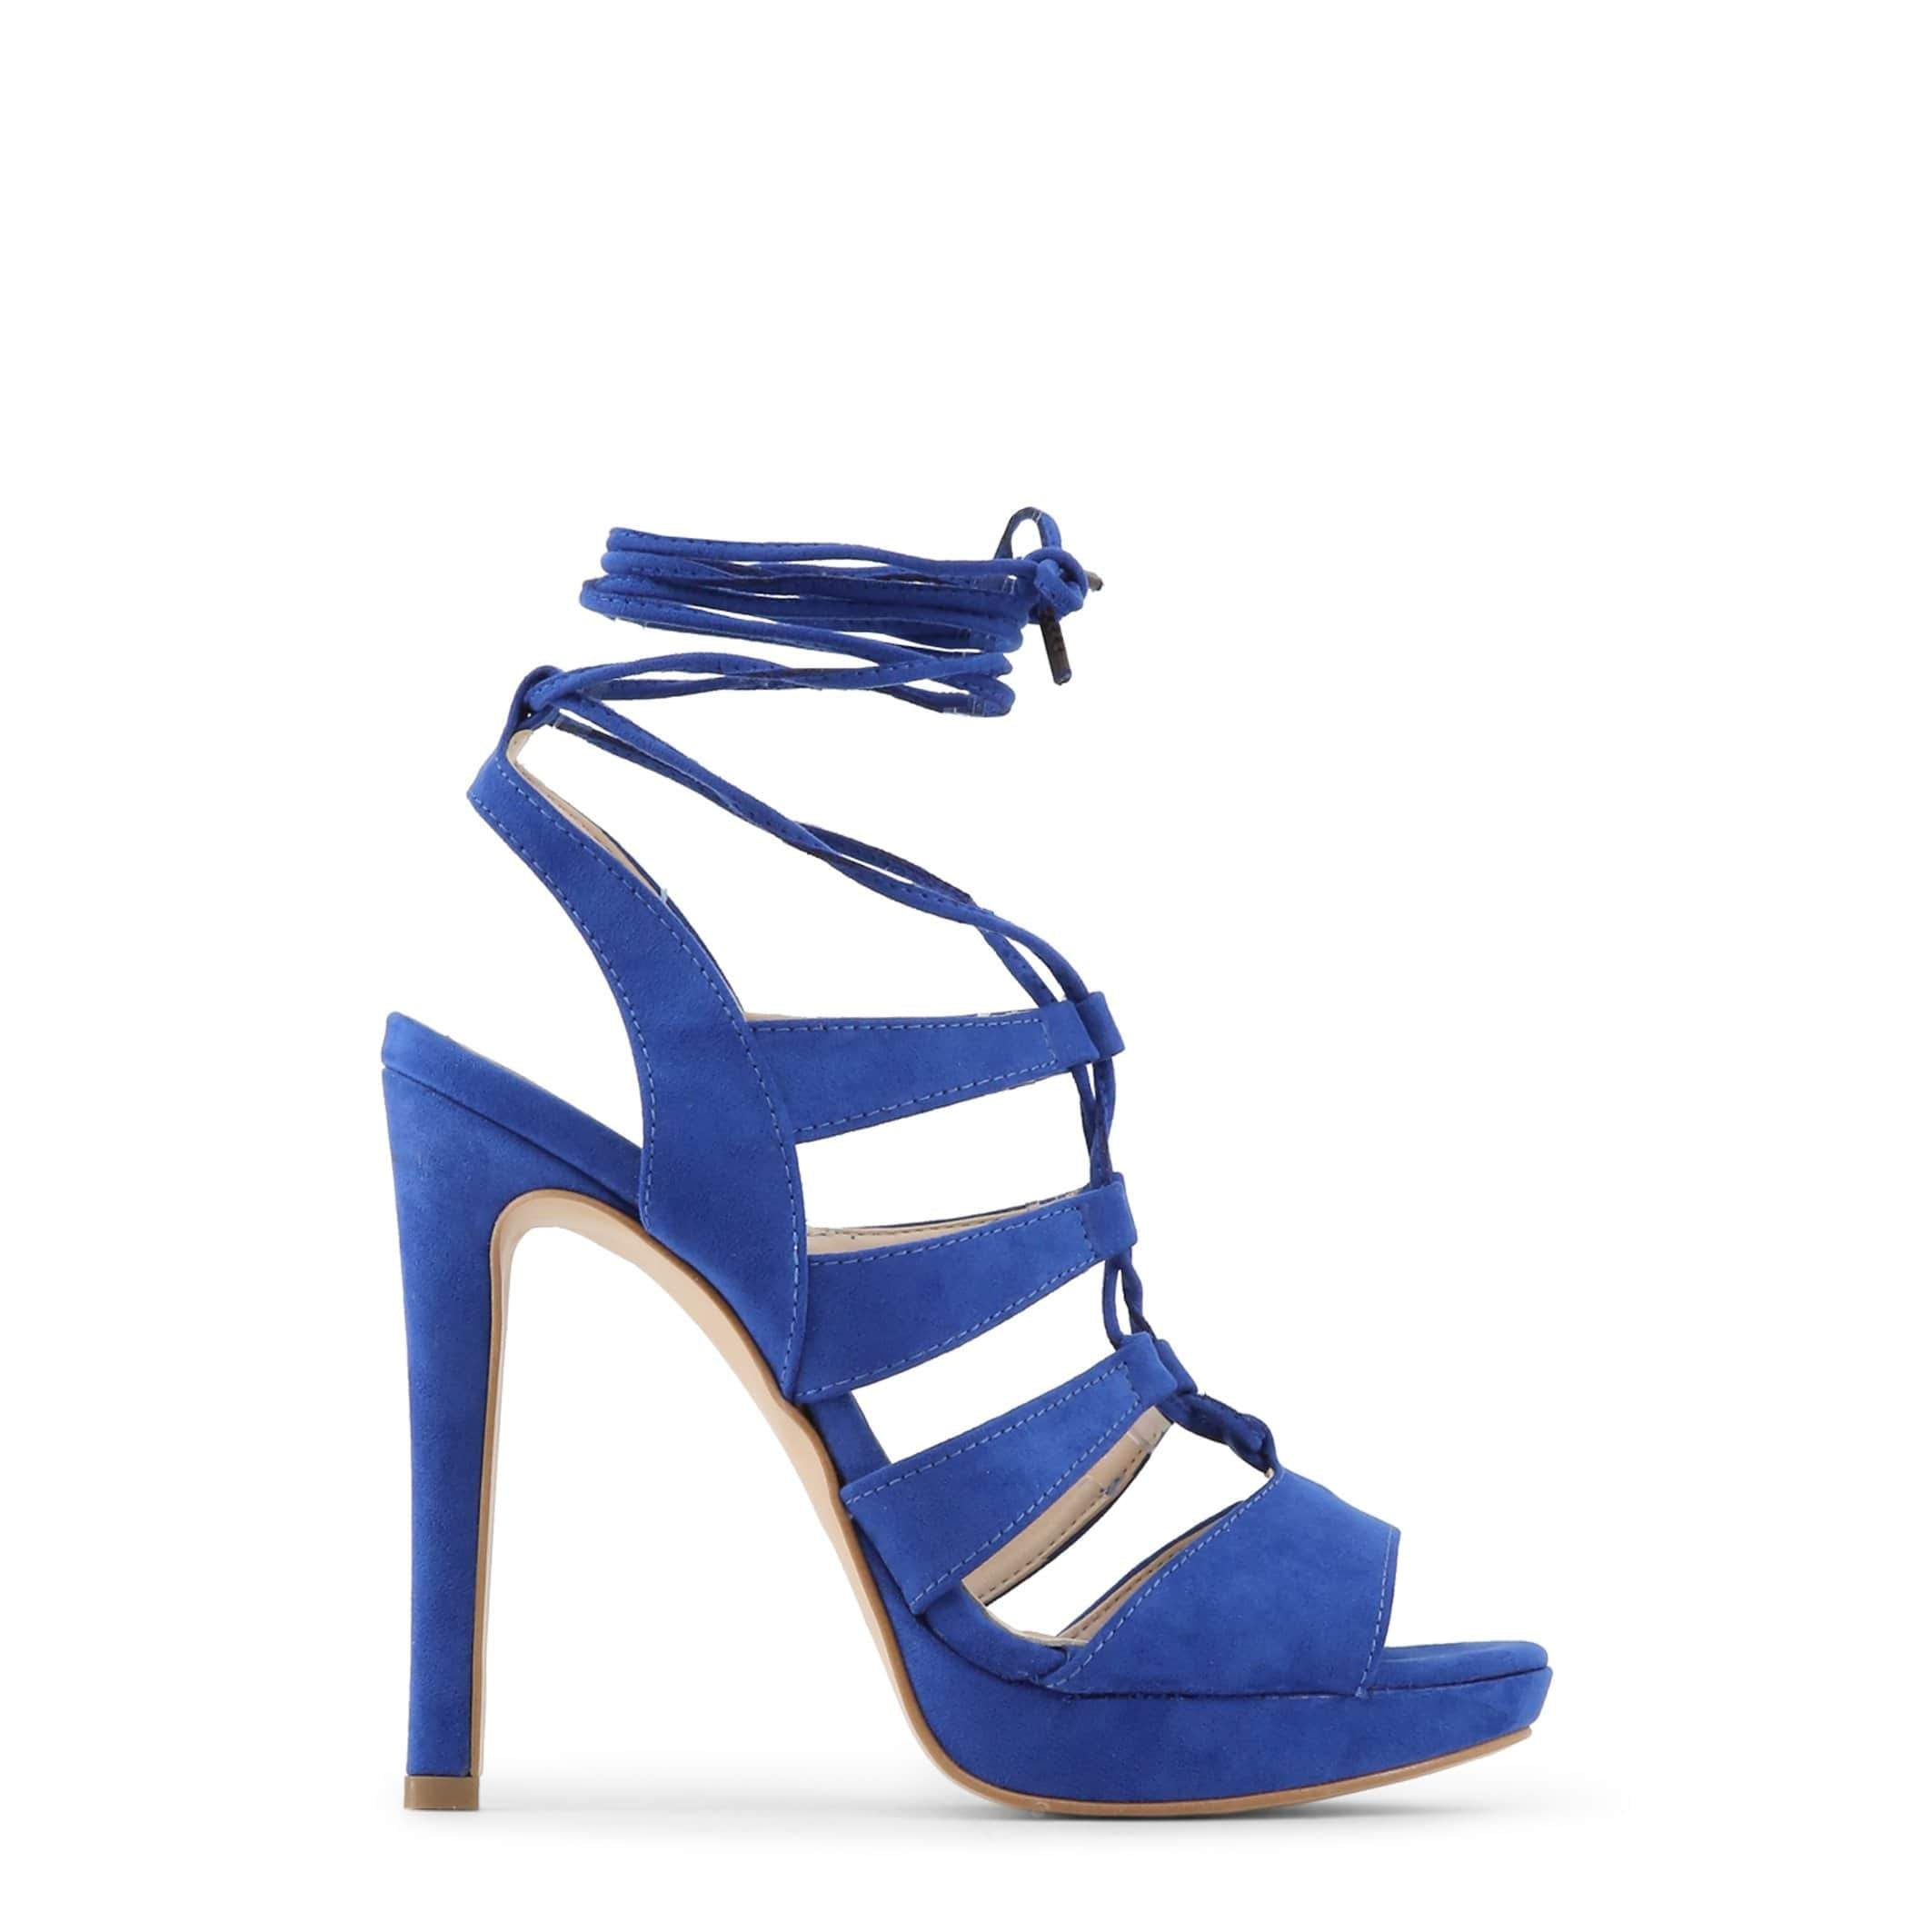 Made in Italia Shoes Sandals blue / 36 Made in Italia - FLAMINIA